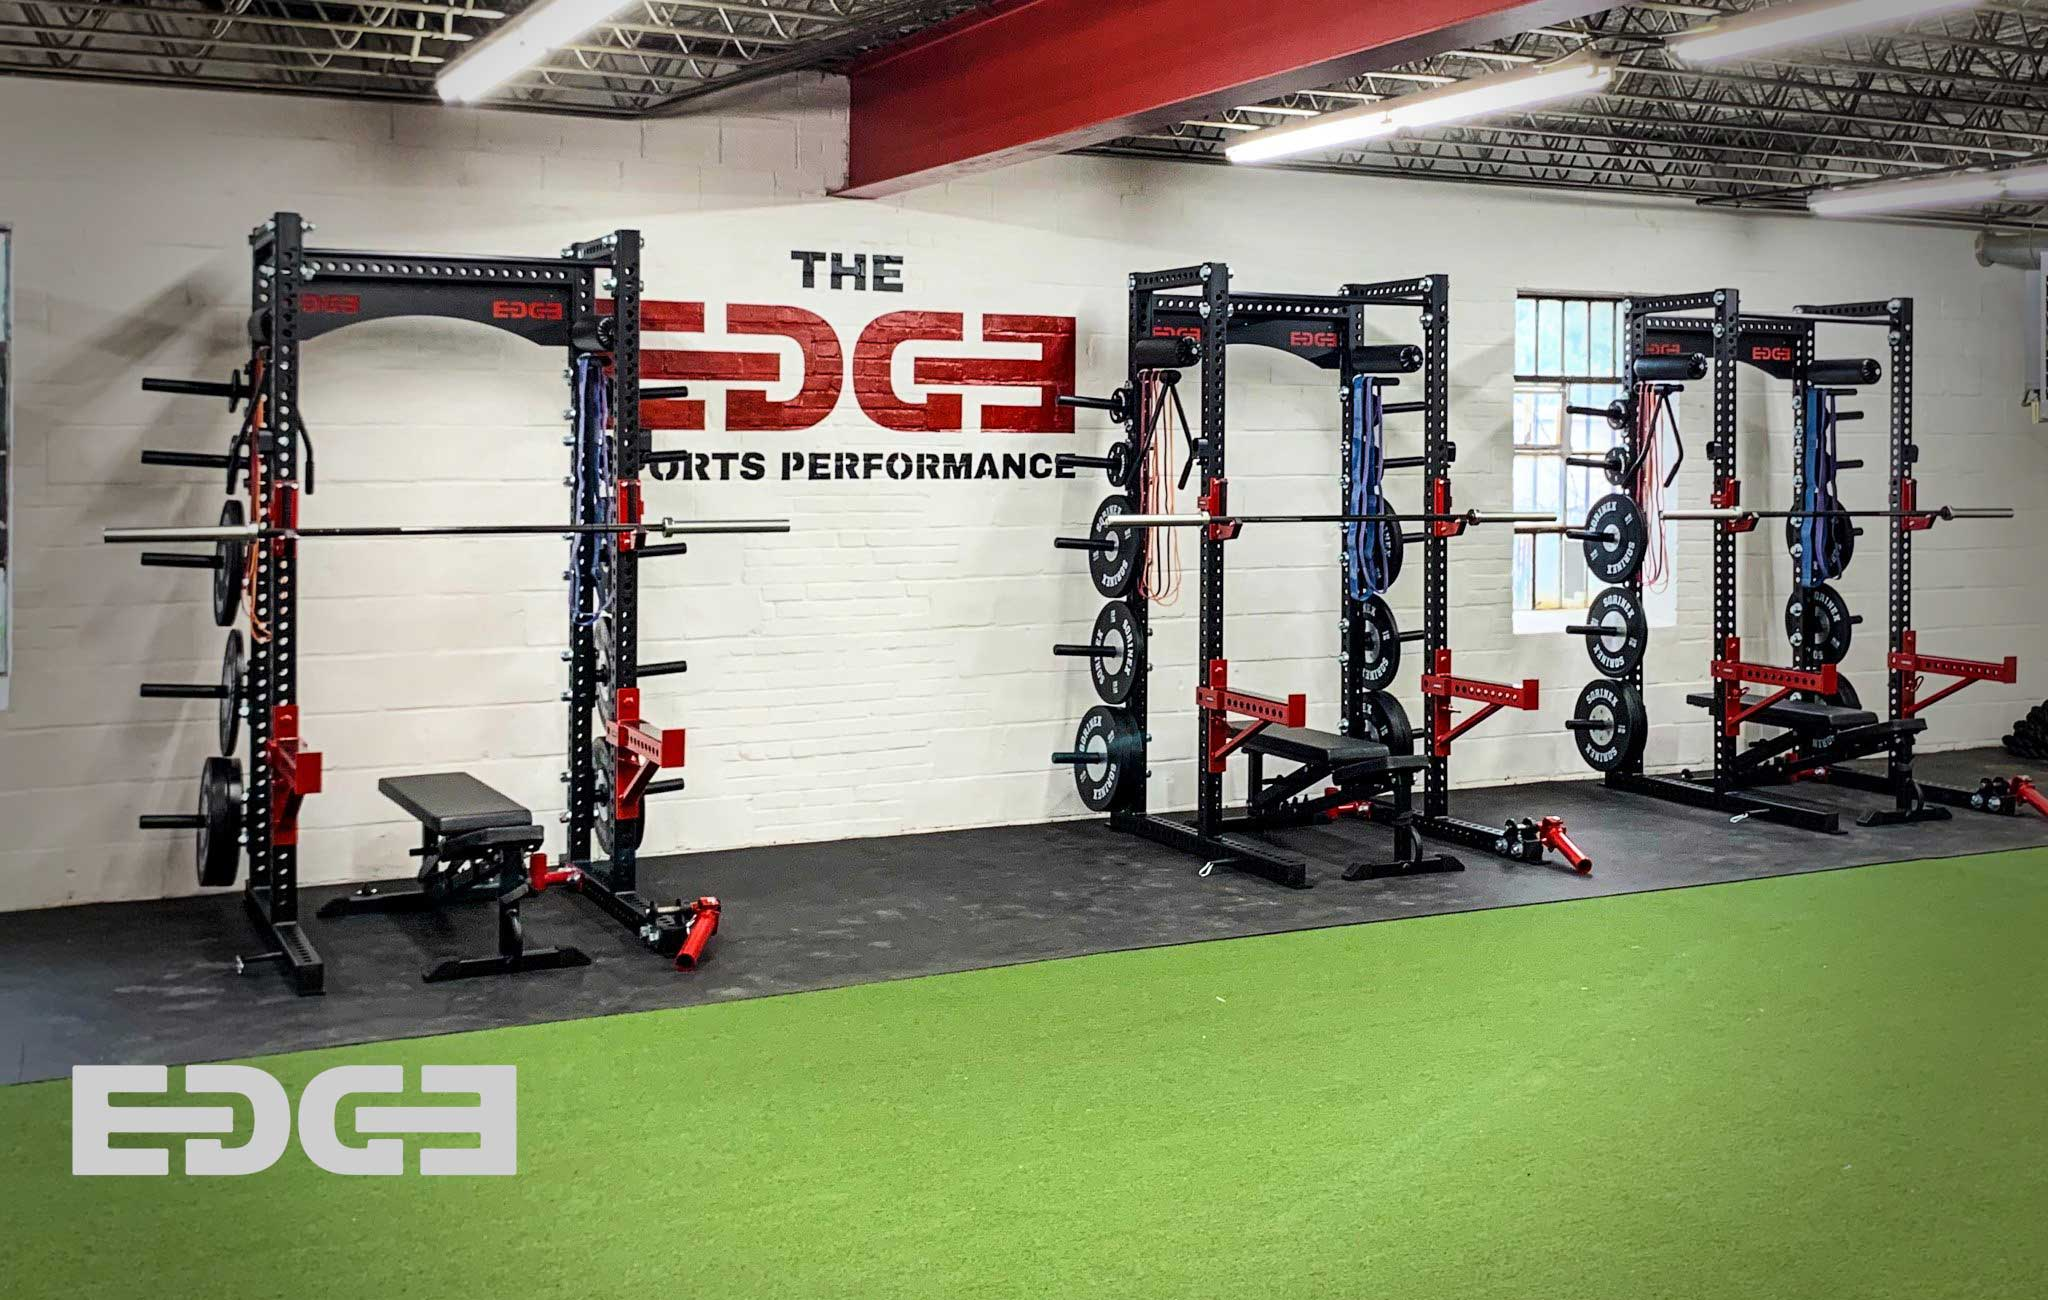 The Edge Sports Performance Training facility Sorinex